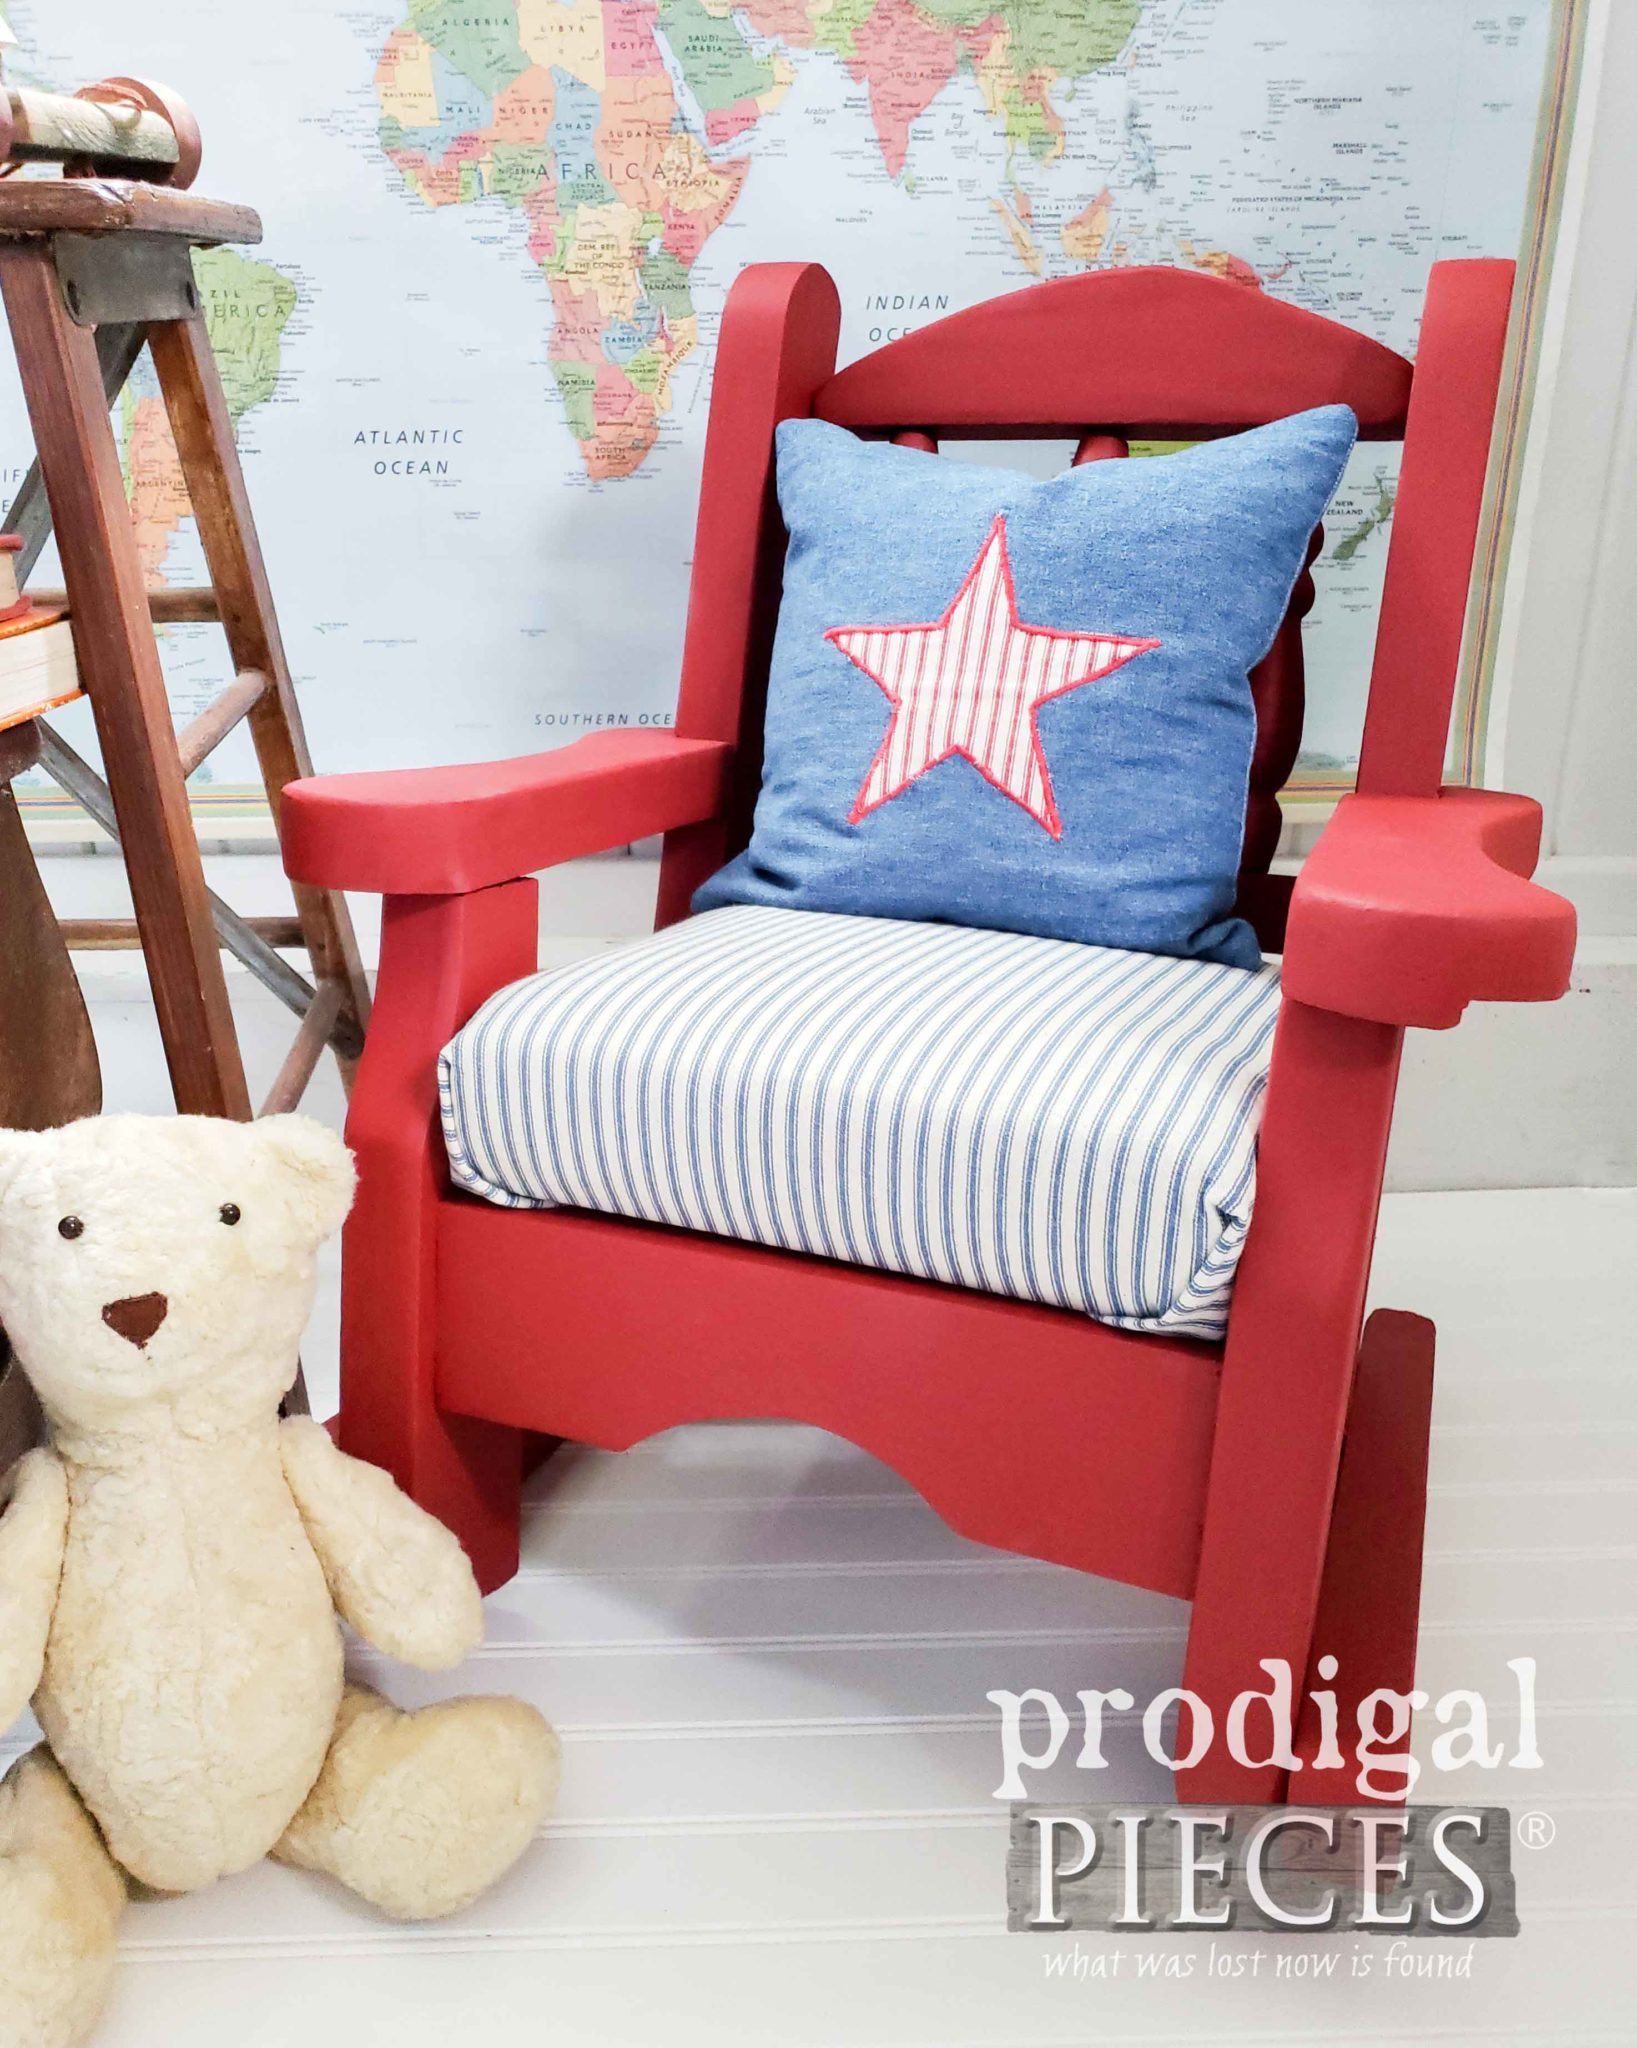 Vintage Handmade Child's Rocking Chair with Americana Style by Larissa of Prodigal Pieces | prodigalpieces.com